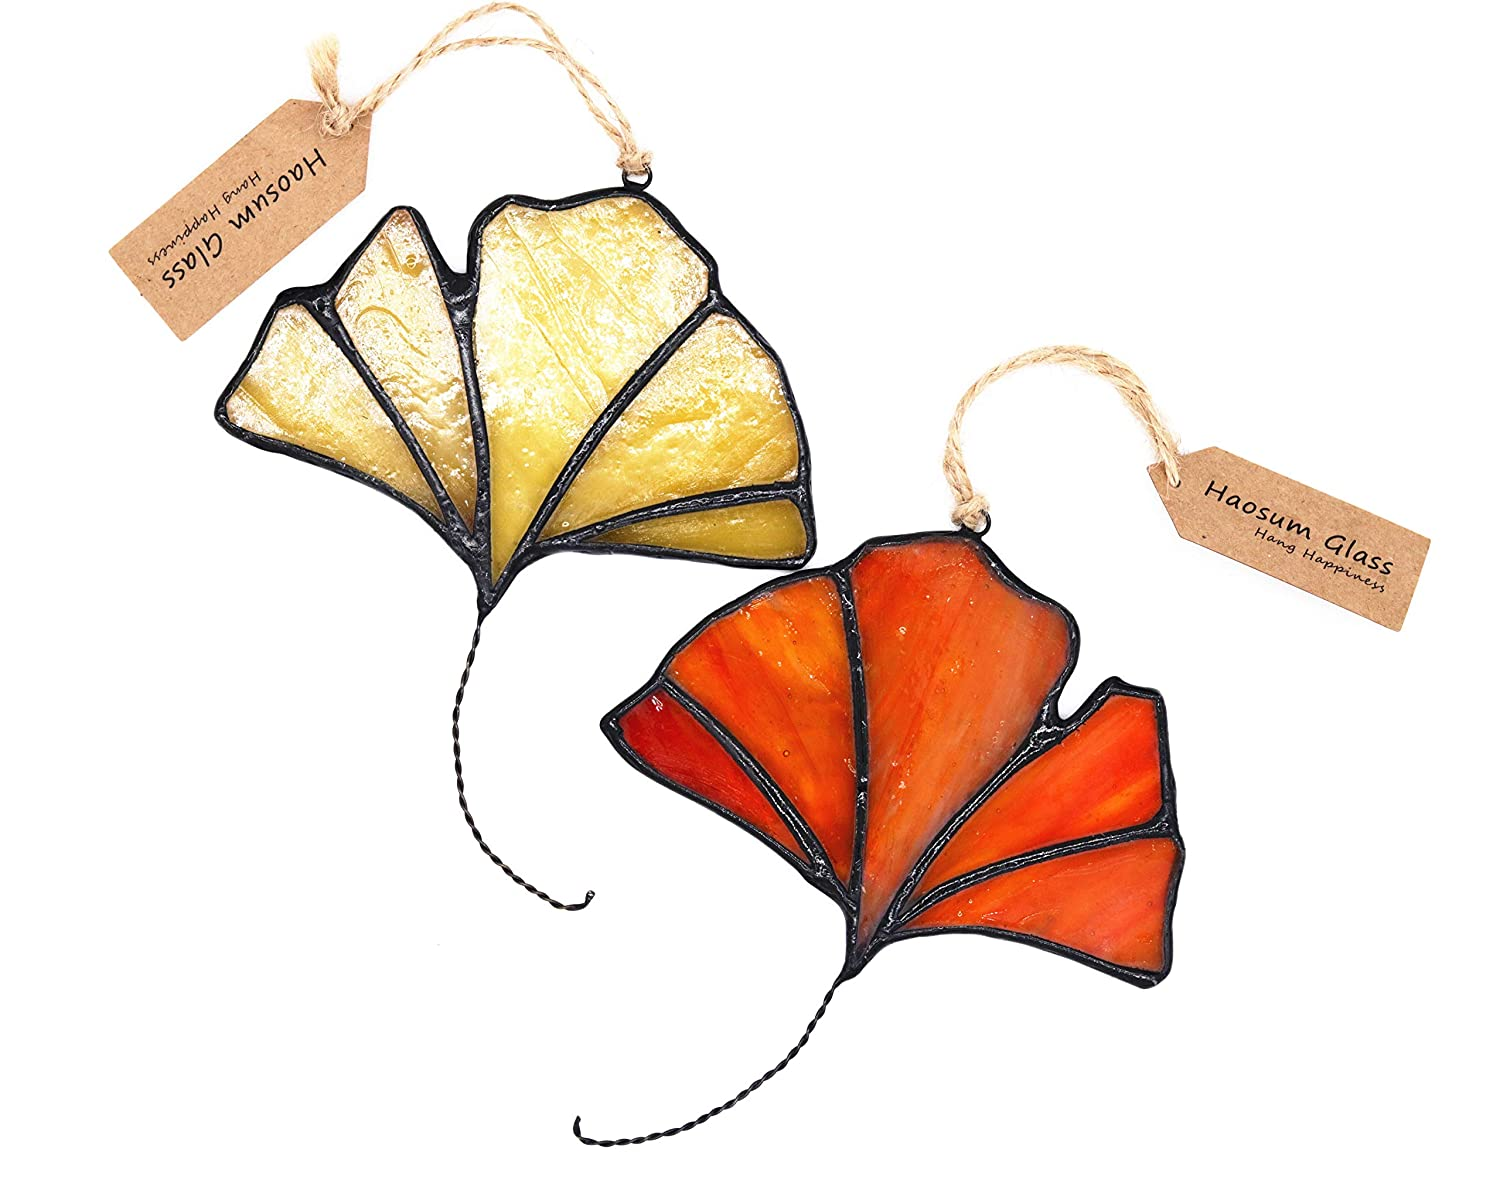 HAOSUM Stained Glass Handmade Window Hanging Ginkgo Tree Leaf Artistic Glass Suncatcher 2PCS 4x3 Inches Haosum Art Glass Factory